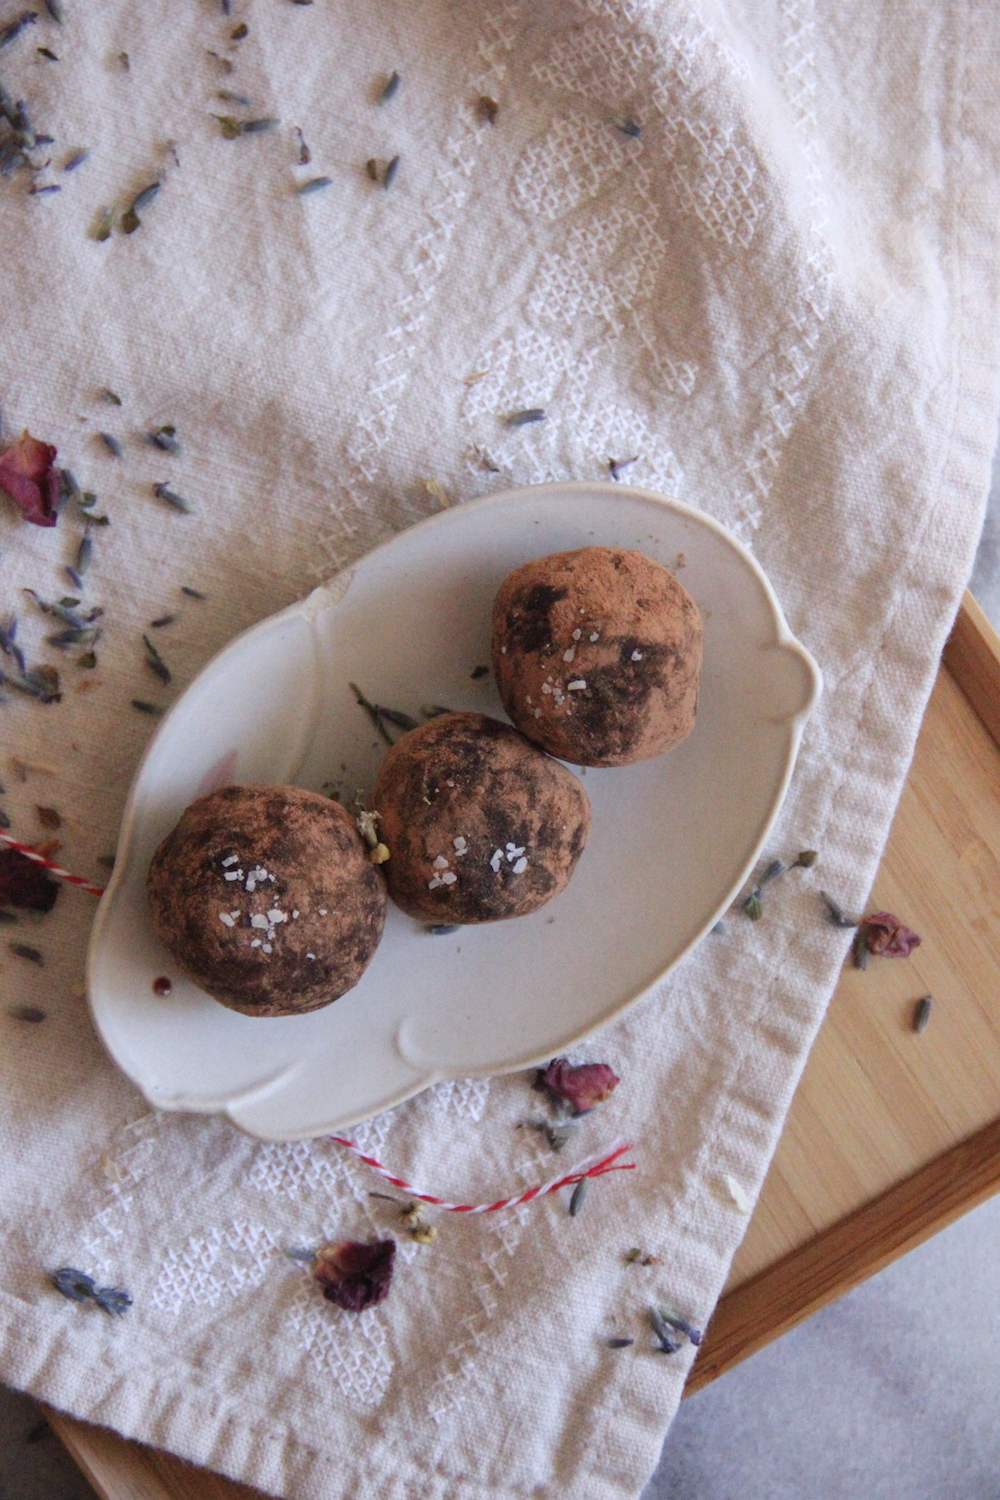 Lavender Sea Salt Truffles - A Little Rosemary and Time